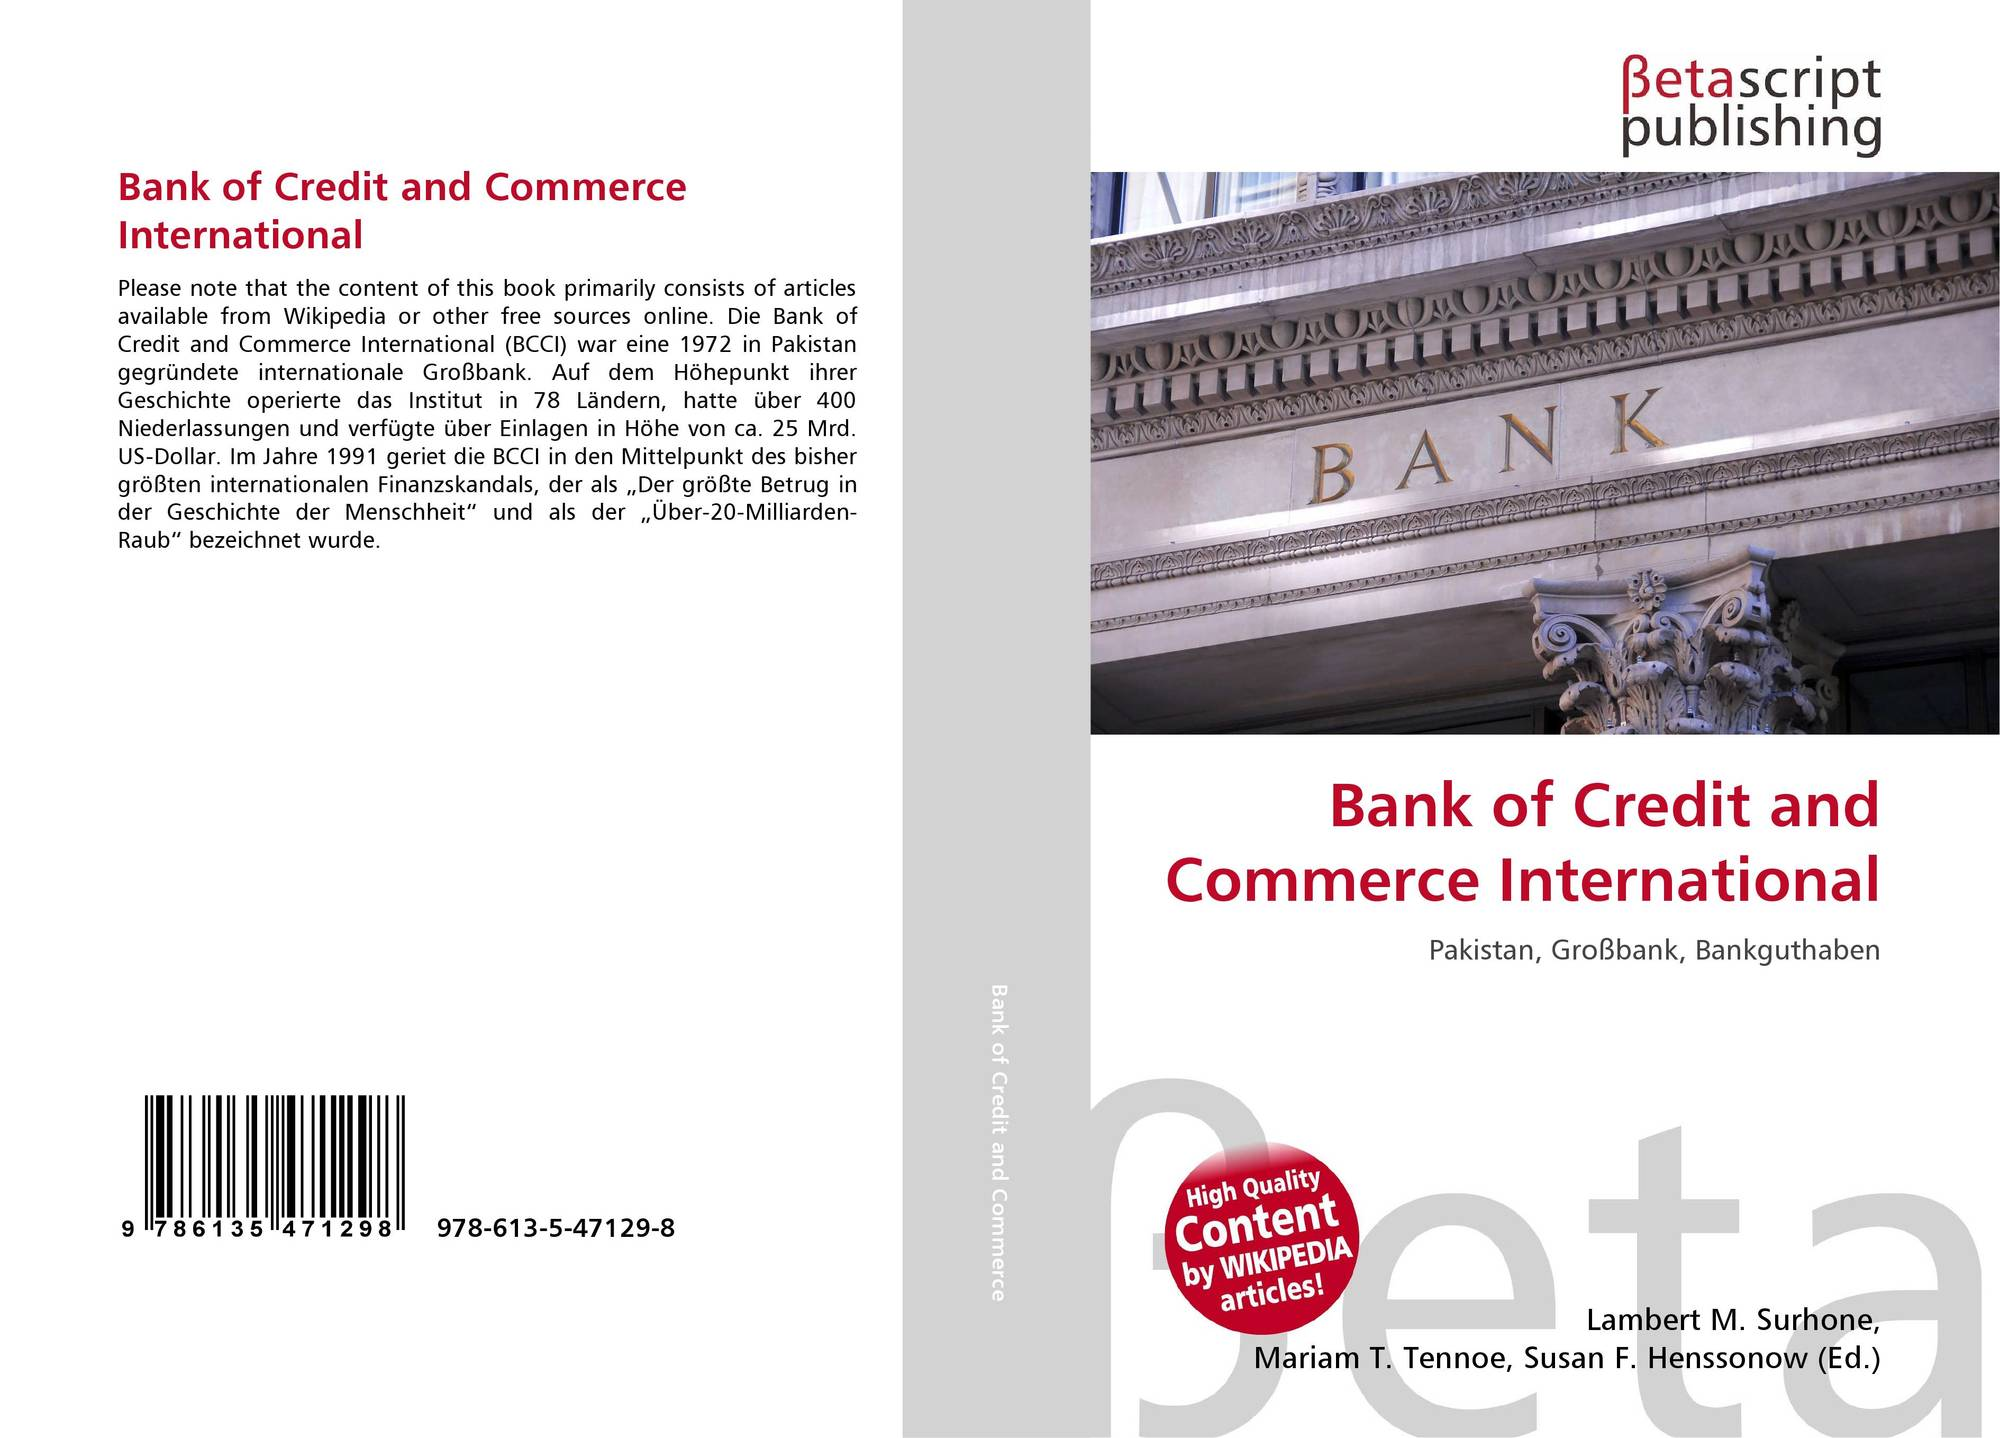 bank of credit and commerce Malik and mahmud v bank of credit and commerce international sa [1997] ukhl 23 is a leading english contract law and uk labour law case, which confirmed the existence of the implied term of mutual trust and confidence in all contracts of employment.